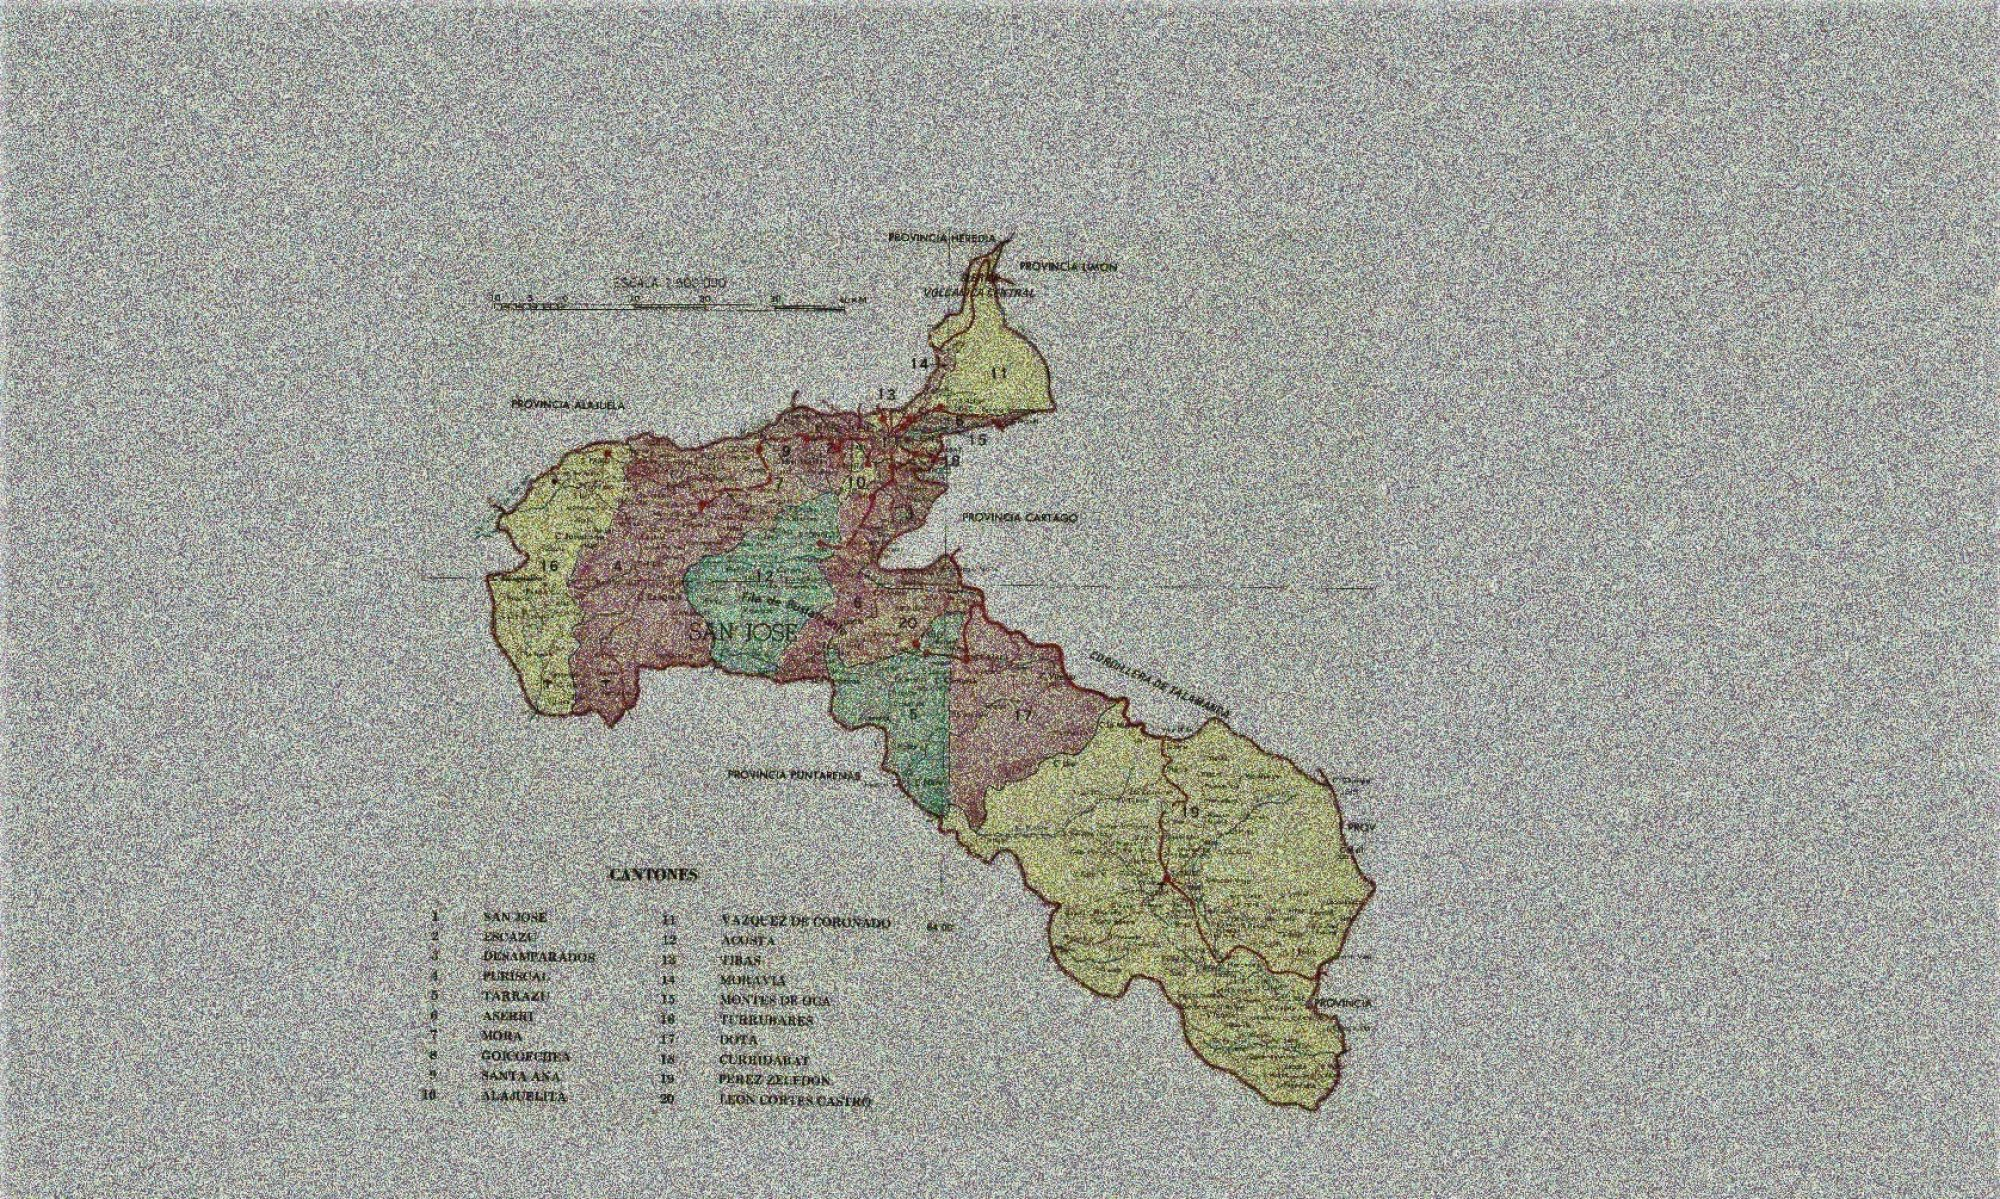 Mapping Language: Districts of San José